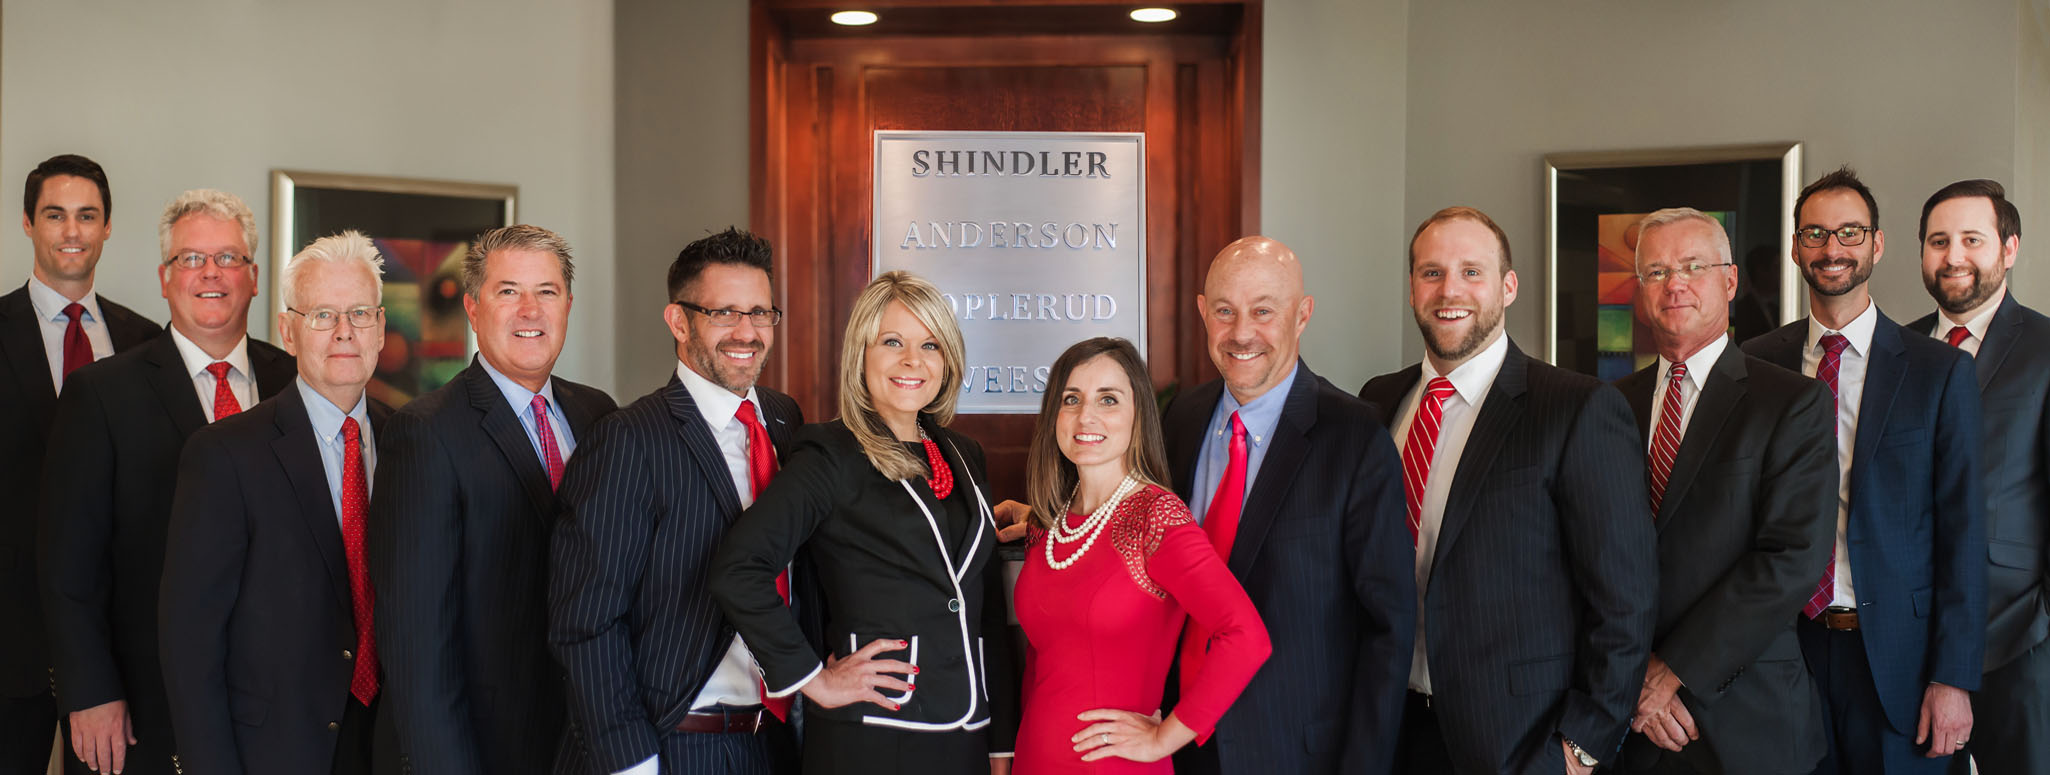 Shindler, Anderson, Goplerud & Weese P.C. Law Firm